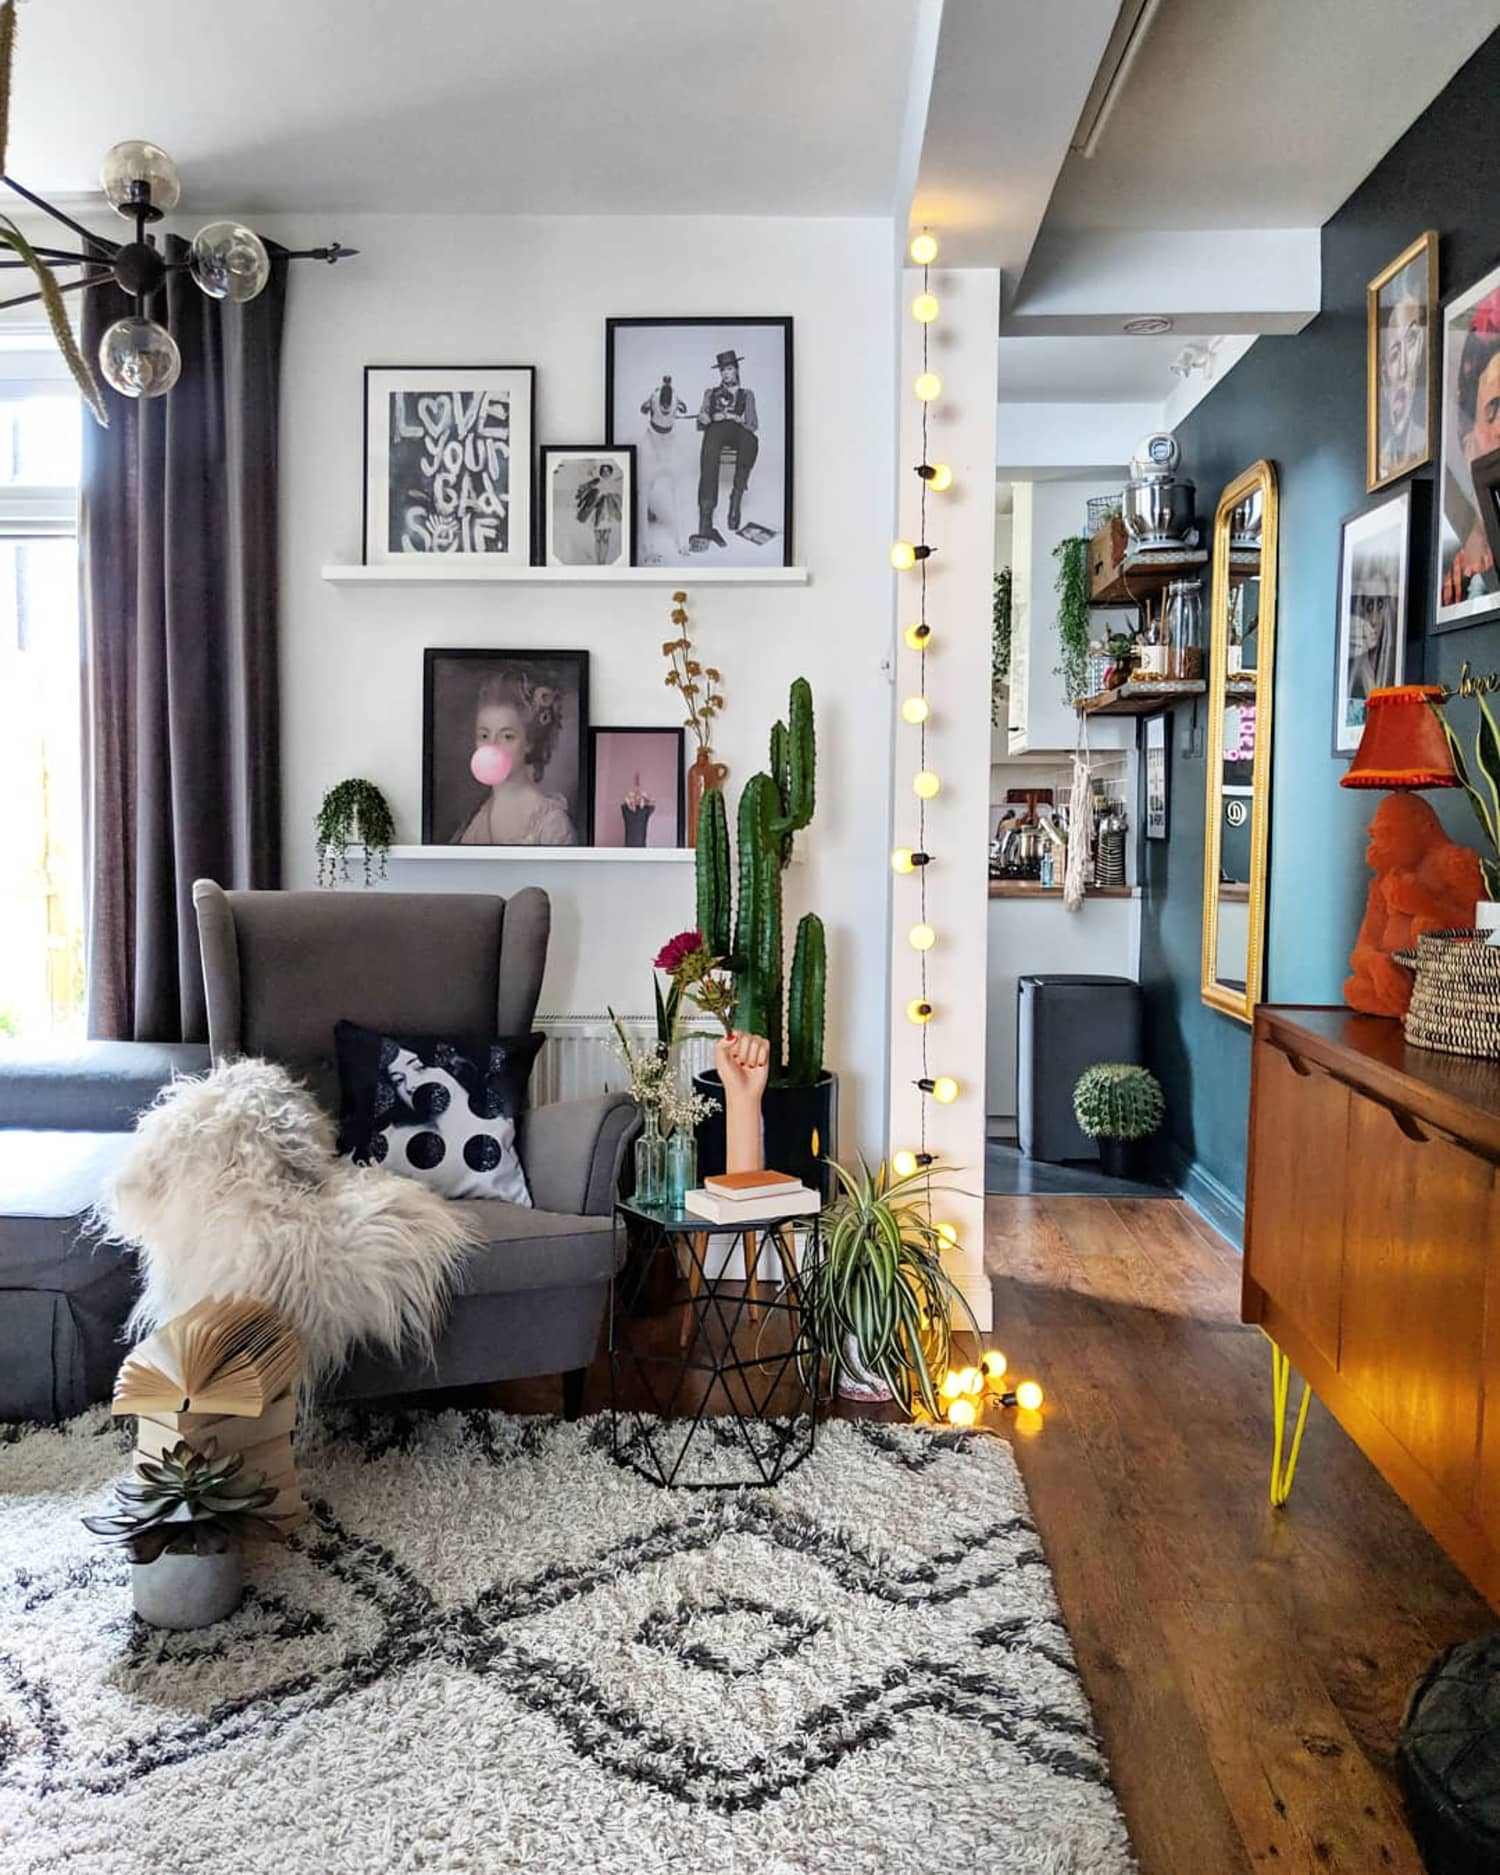 eclectic decorating ideas for small apartments intregated   Bold and Eclectic Home Decor Styling Ideas   Apartment Therapy